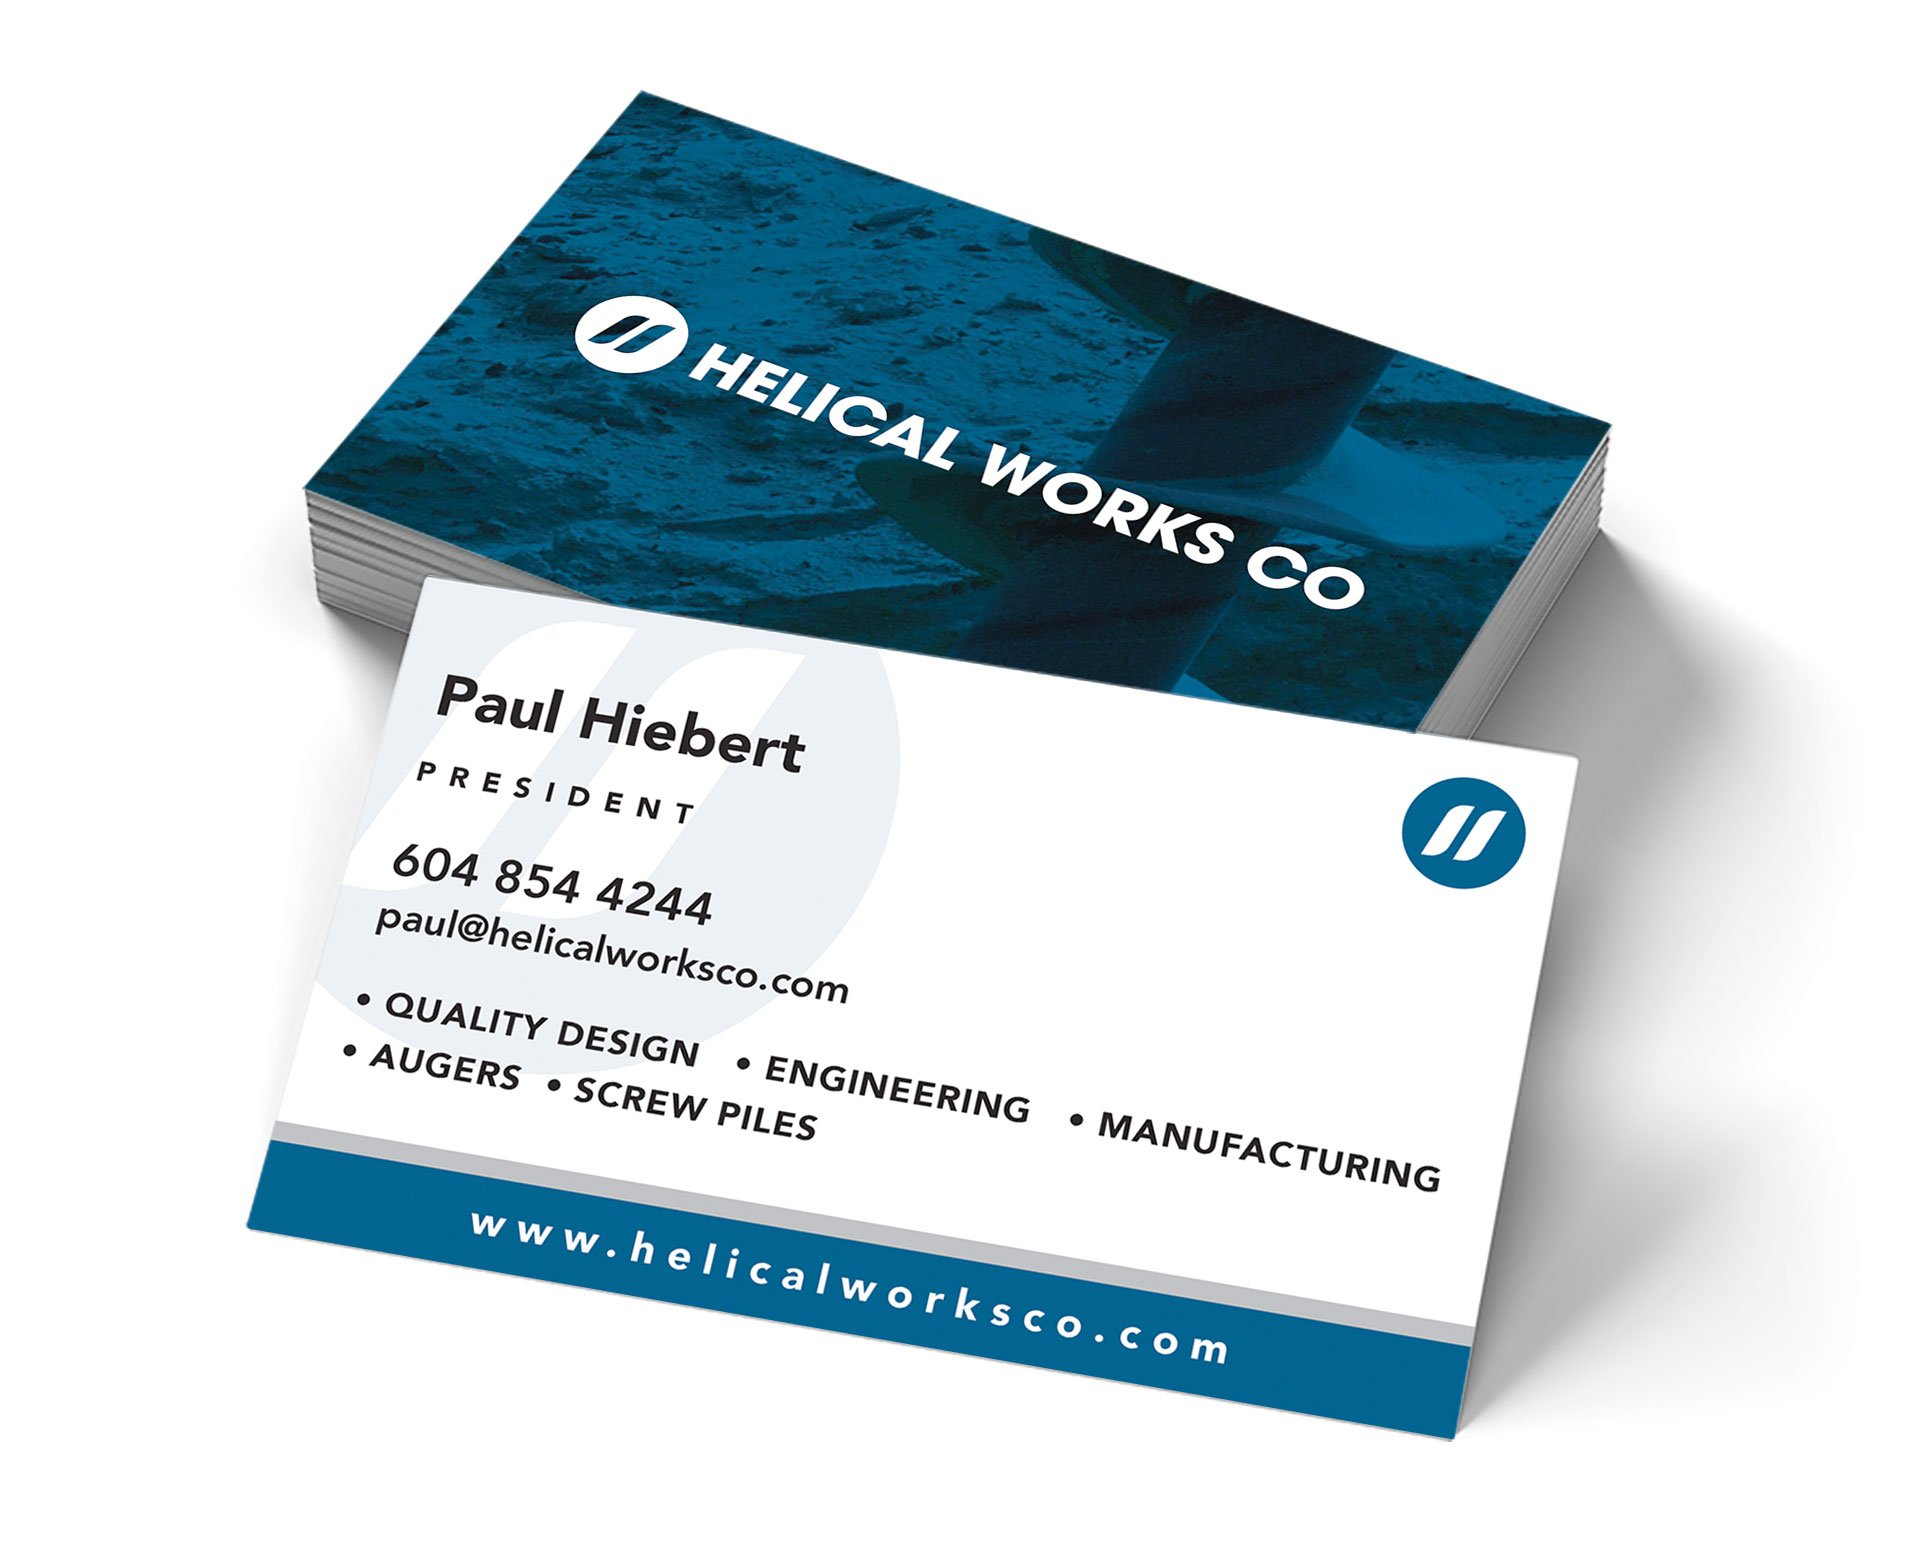 3-Helical-Works-Co---Business-Cards